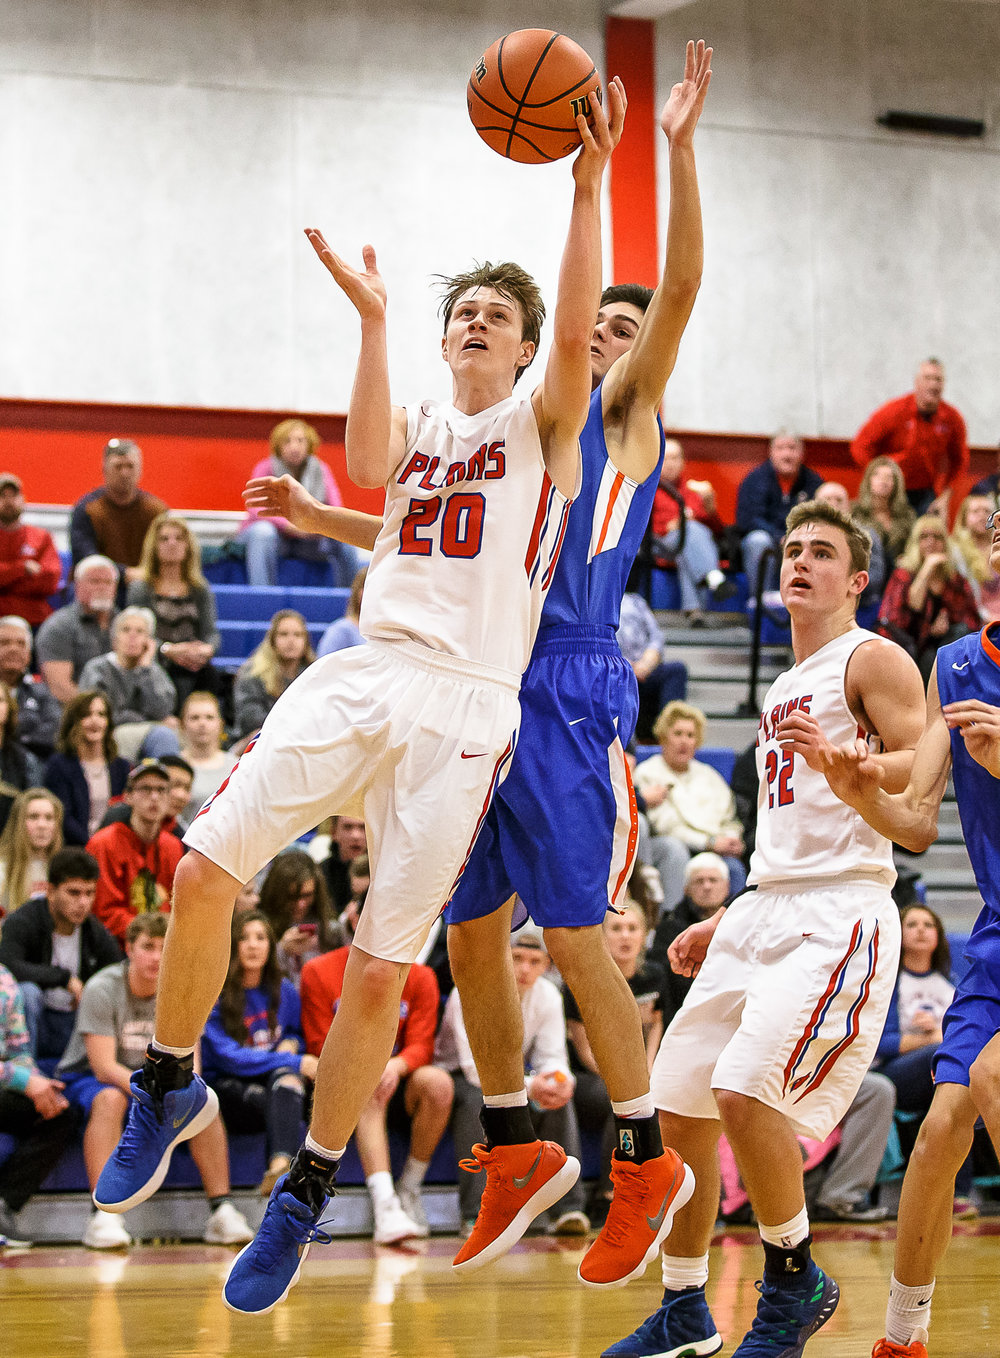 Pleasant Plains' Nick Savage (20) goes up for a lay-in against Riverton's Griffin King (12) in the second half during the second night of the Boys Sangamon County Tournament at Lincoln Land Community College's Cass Gymnasium, Tuesday, Jan. 9, 2018, in Springfield, Ill. [Justin L. Fowler/The State Journal-Register]